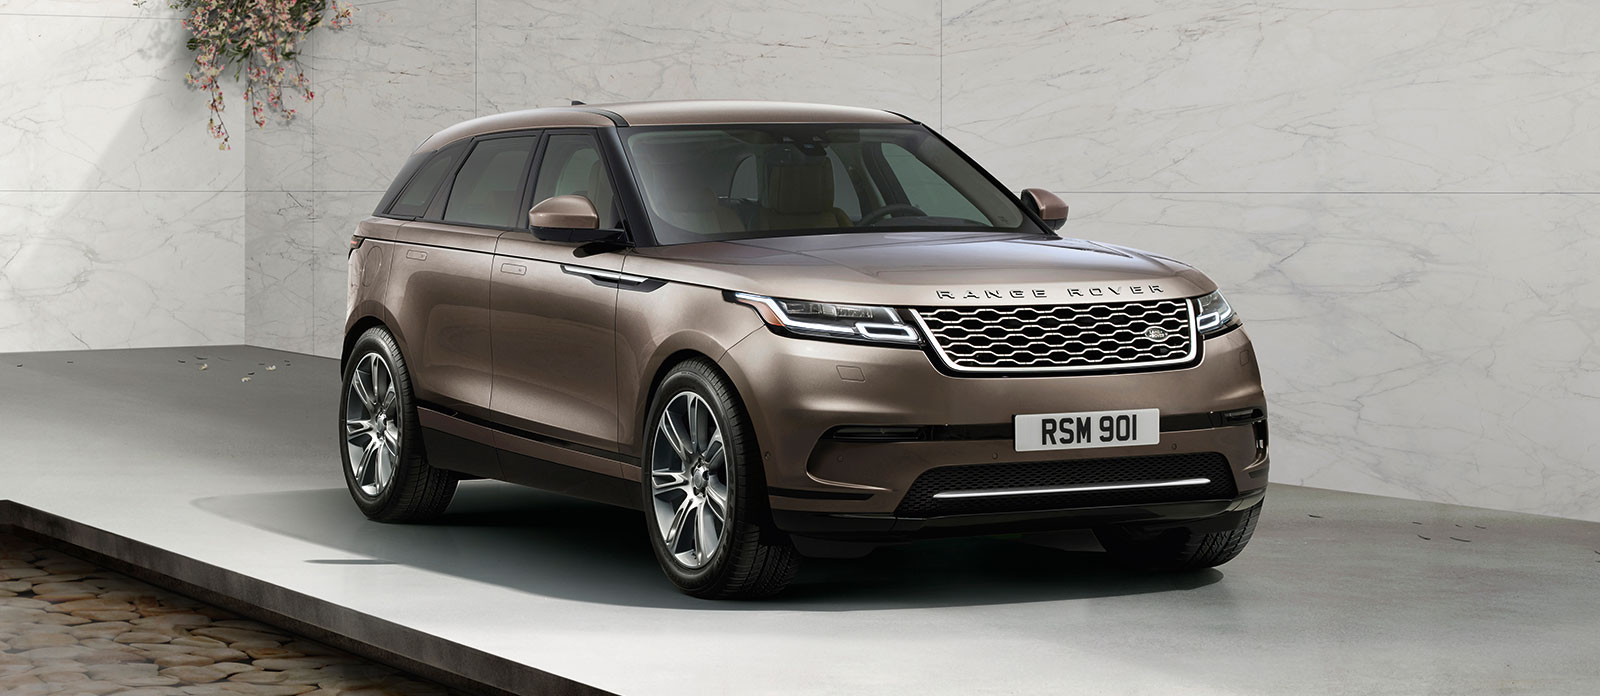 range rover velar lease deals nyc lamoureph blog. Black Bedroom Furniture Sets. Home Design Ideas